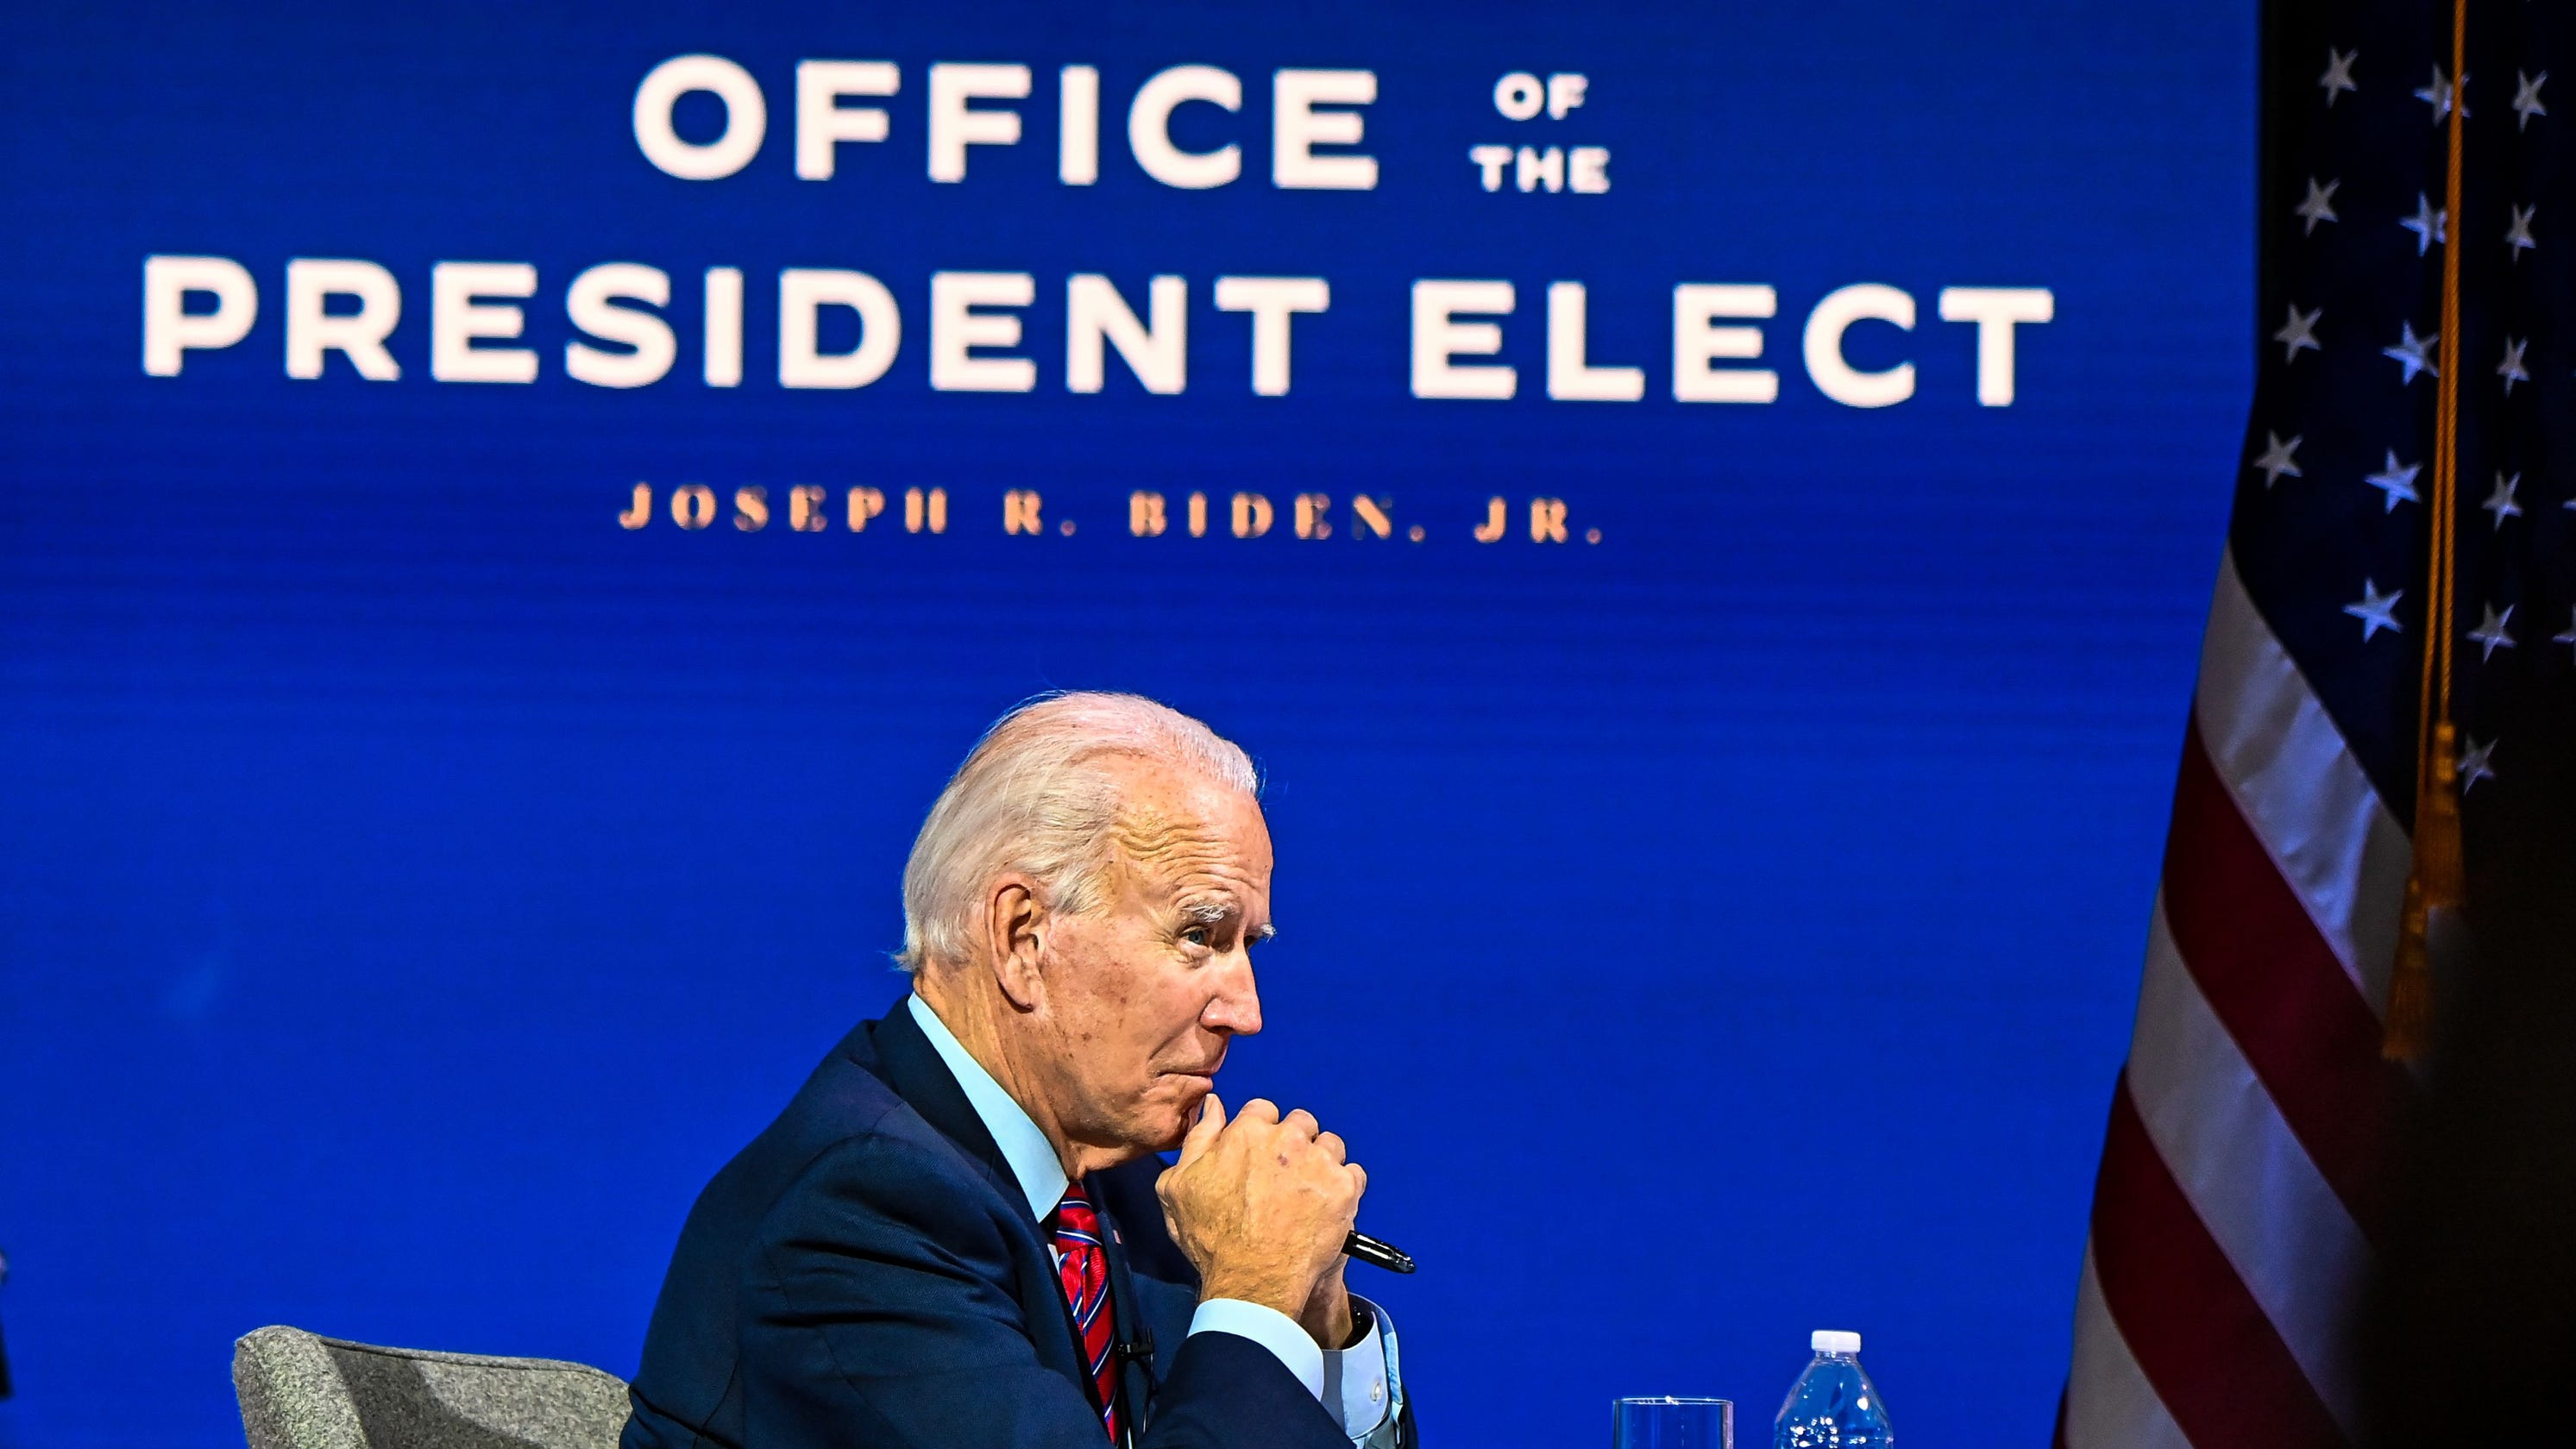 Biden's National Security team reveals he has learned from the mistakes of past presidents